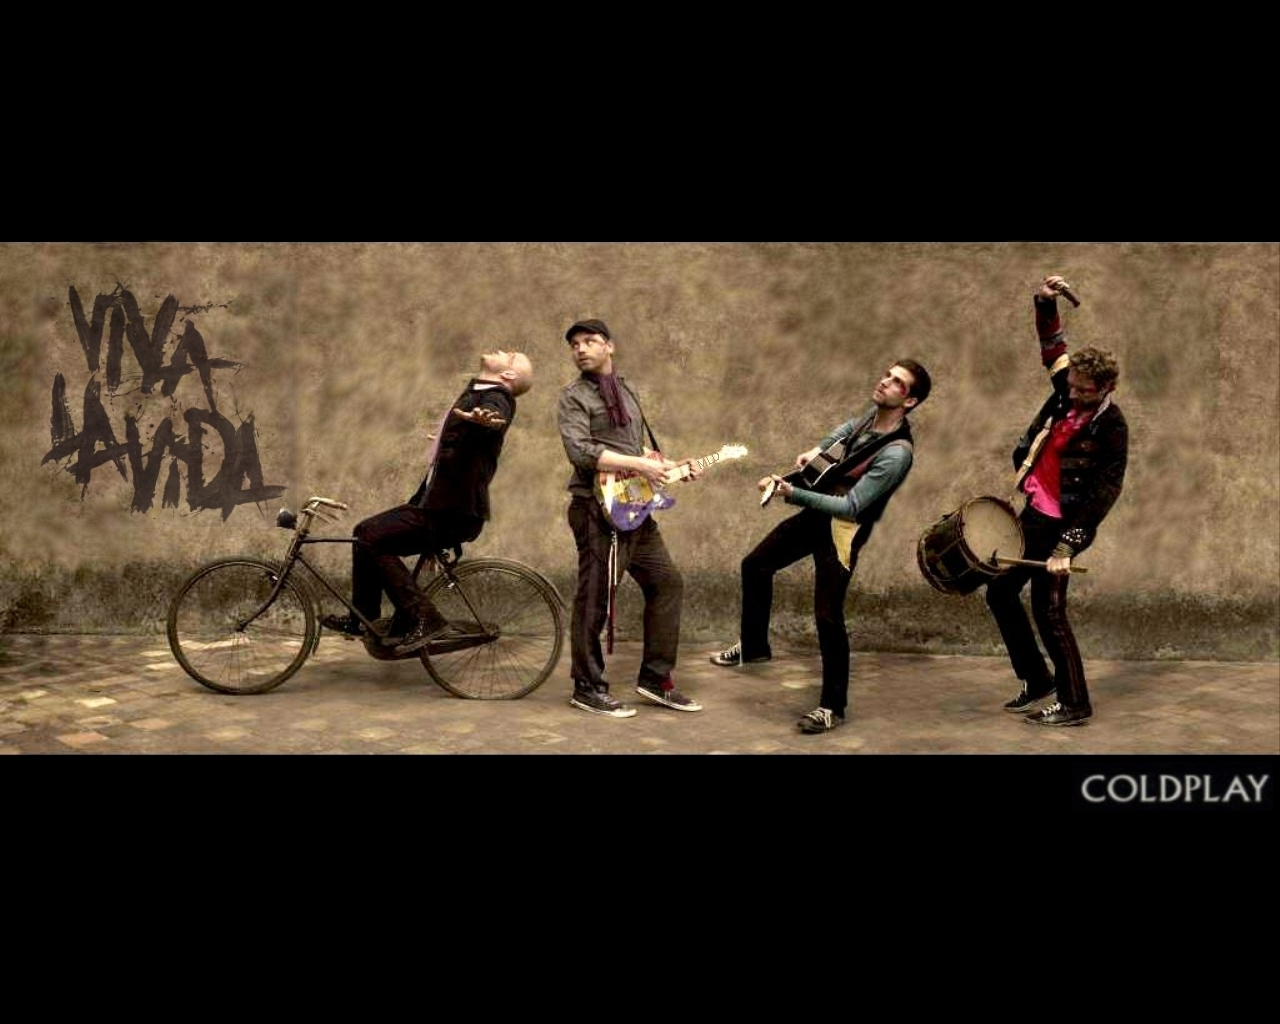 Coldplay Images Coldplay Hd Wallpaper And Background Photos 11380754